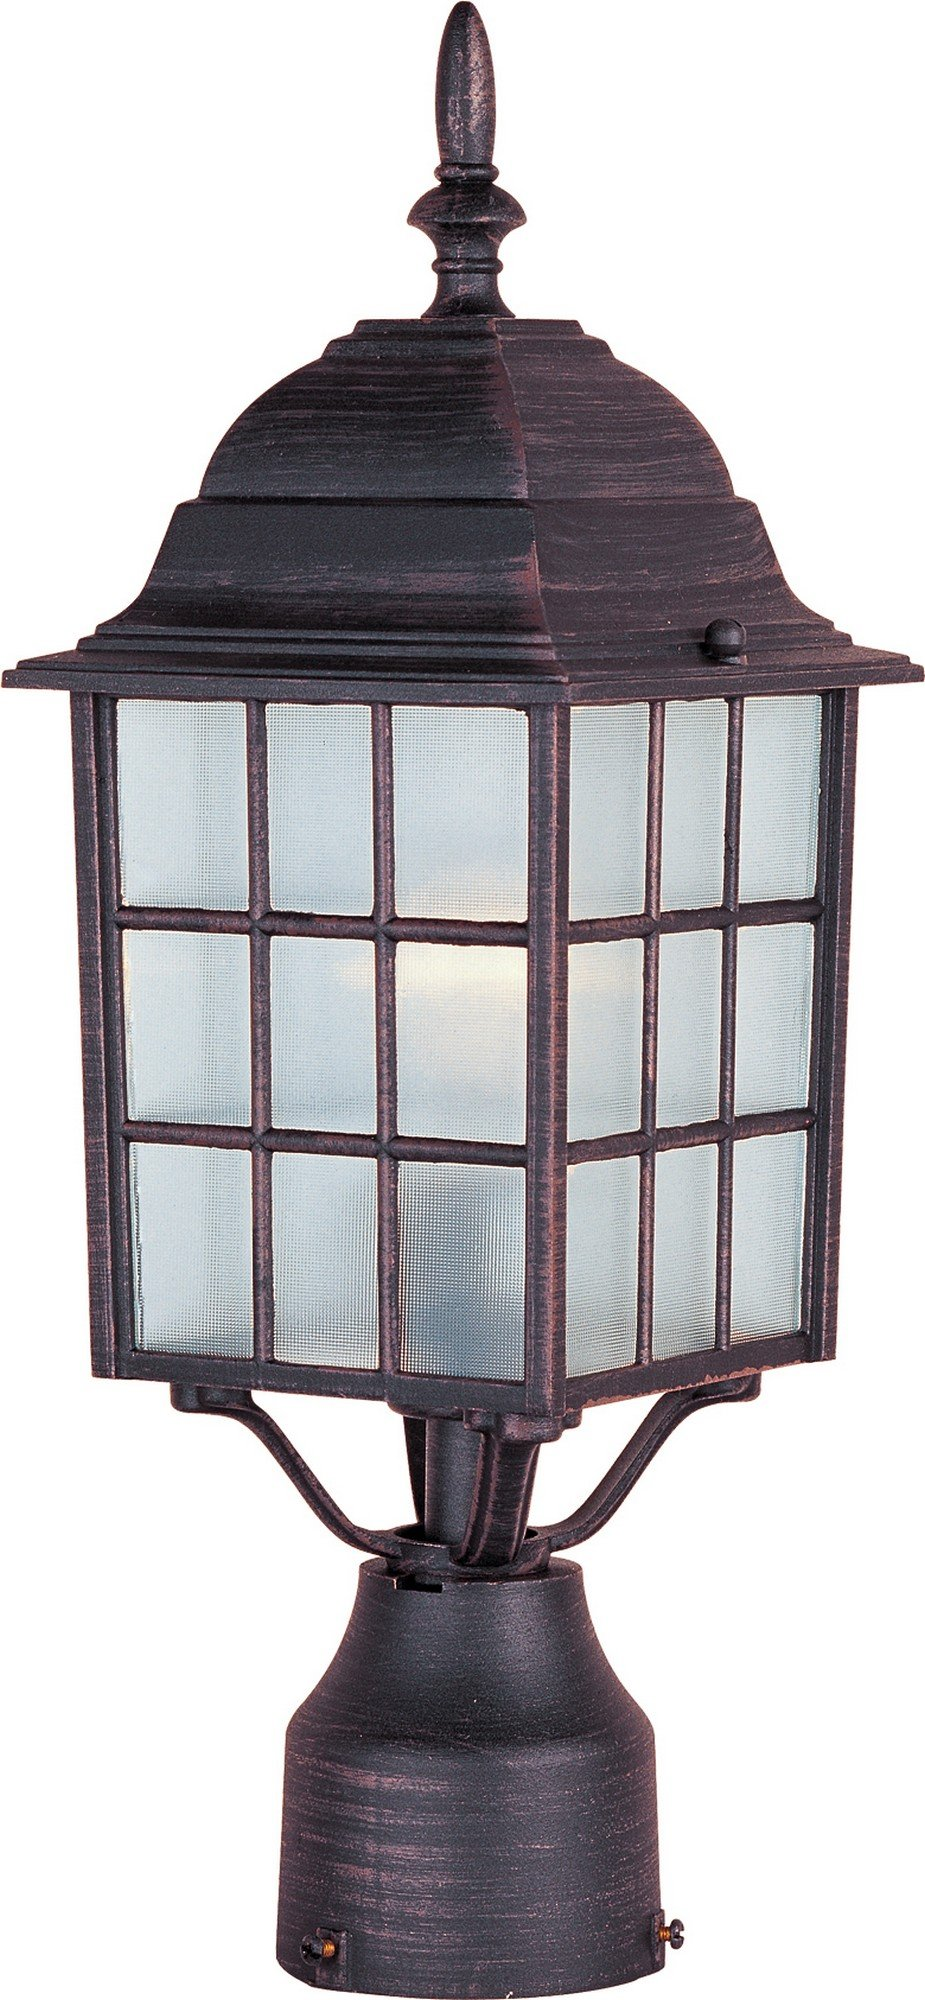 Maxim 1052RP North Church 1-Light Outdoor Pole/Post Lantern, Rust Patina Finish, Clear Glass, MB Incandescent Incandescent Bulb , 60W Max., Dry Safety Rating, Standard Dimmable, Glass Shade Material, 10080 Rated Lumens